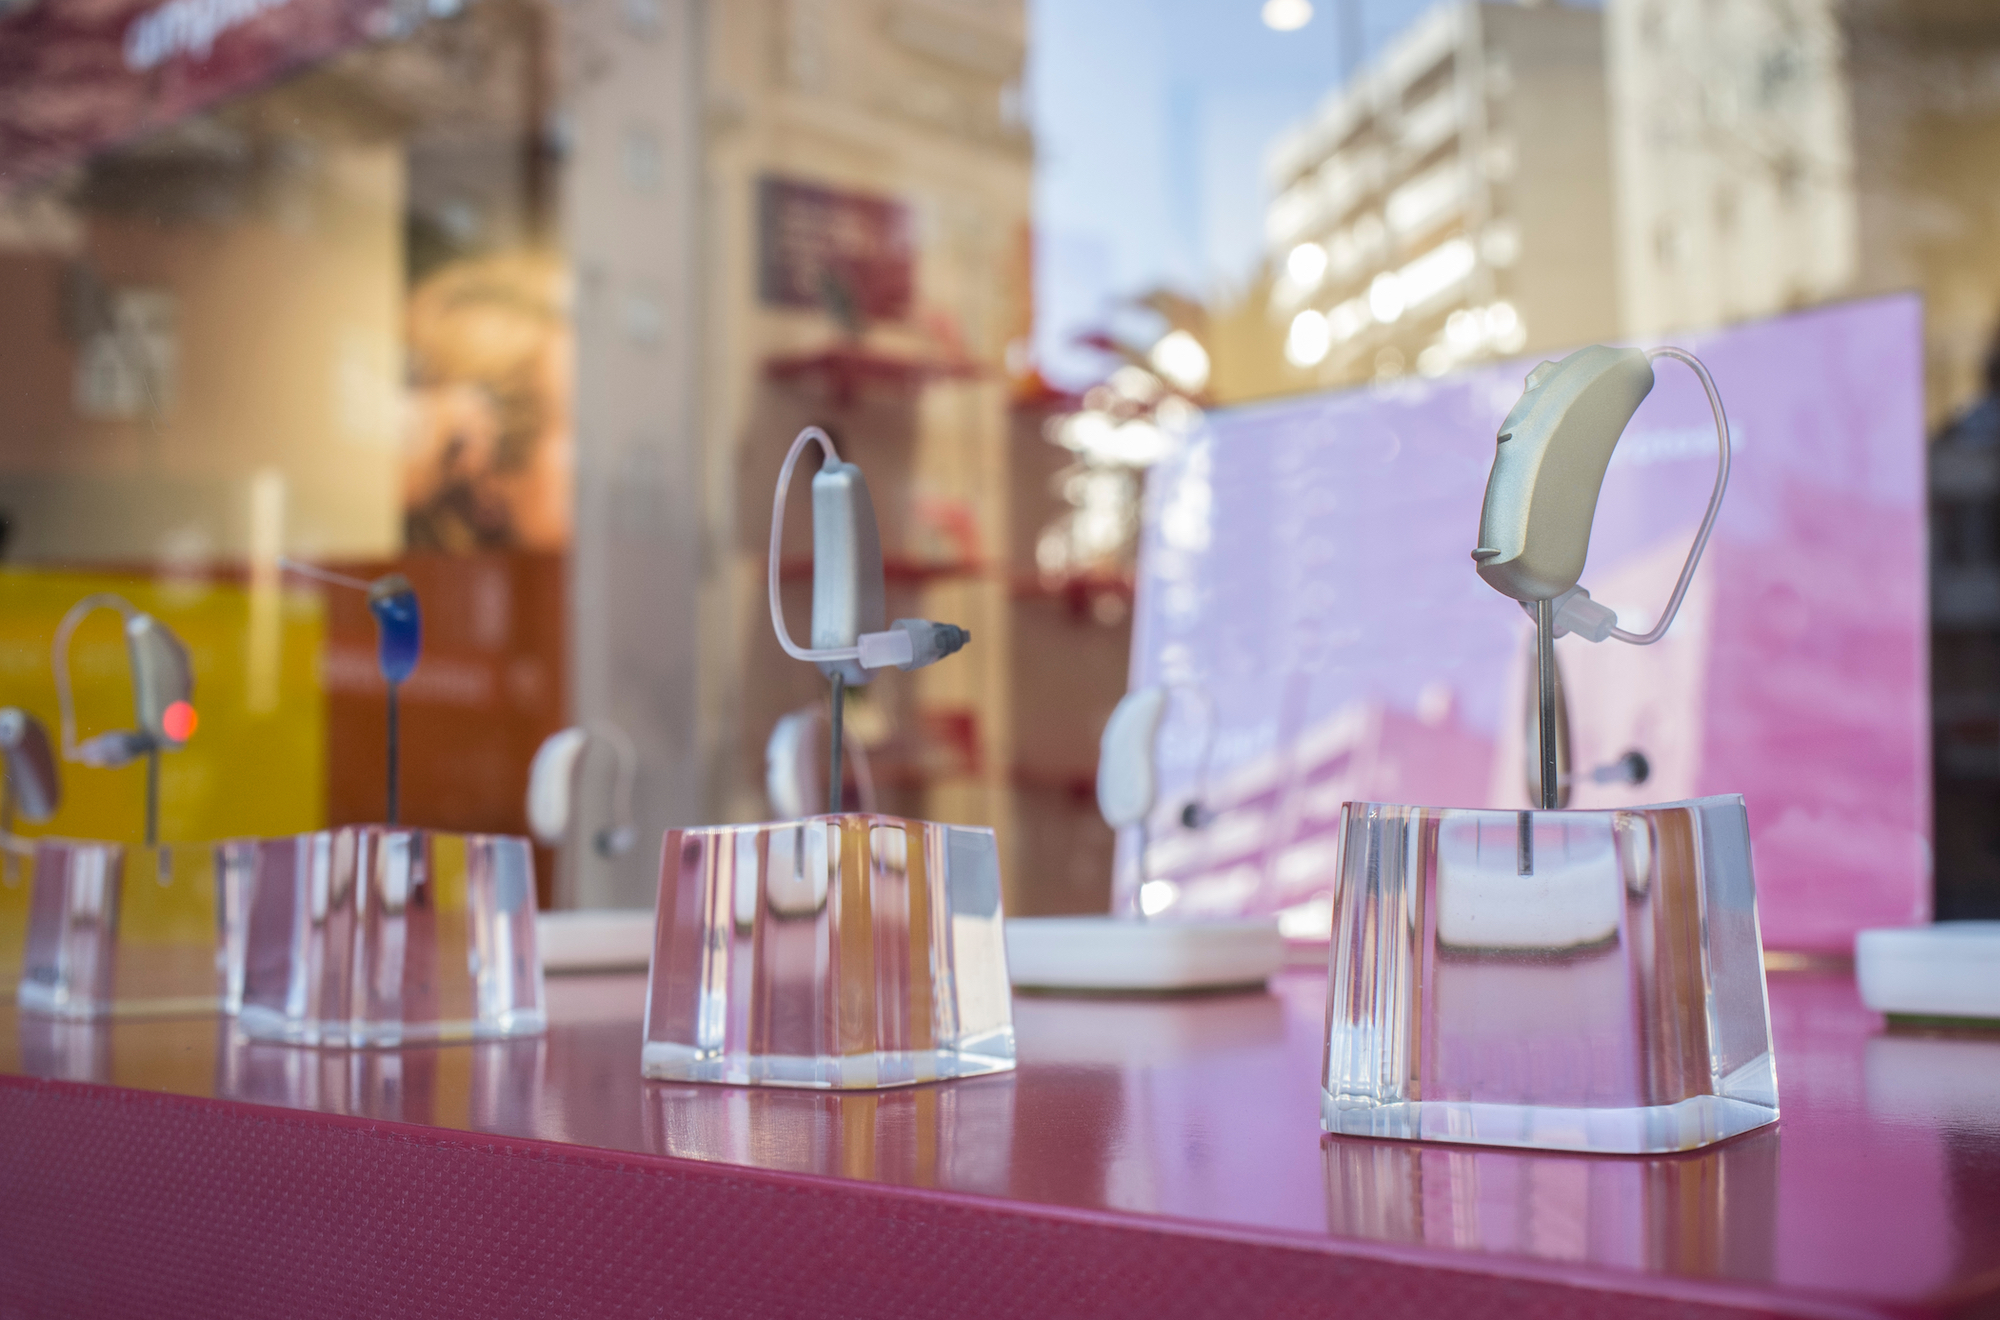 modern hearing aids in display cases